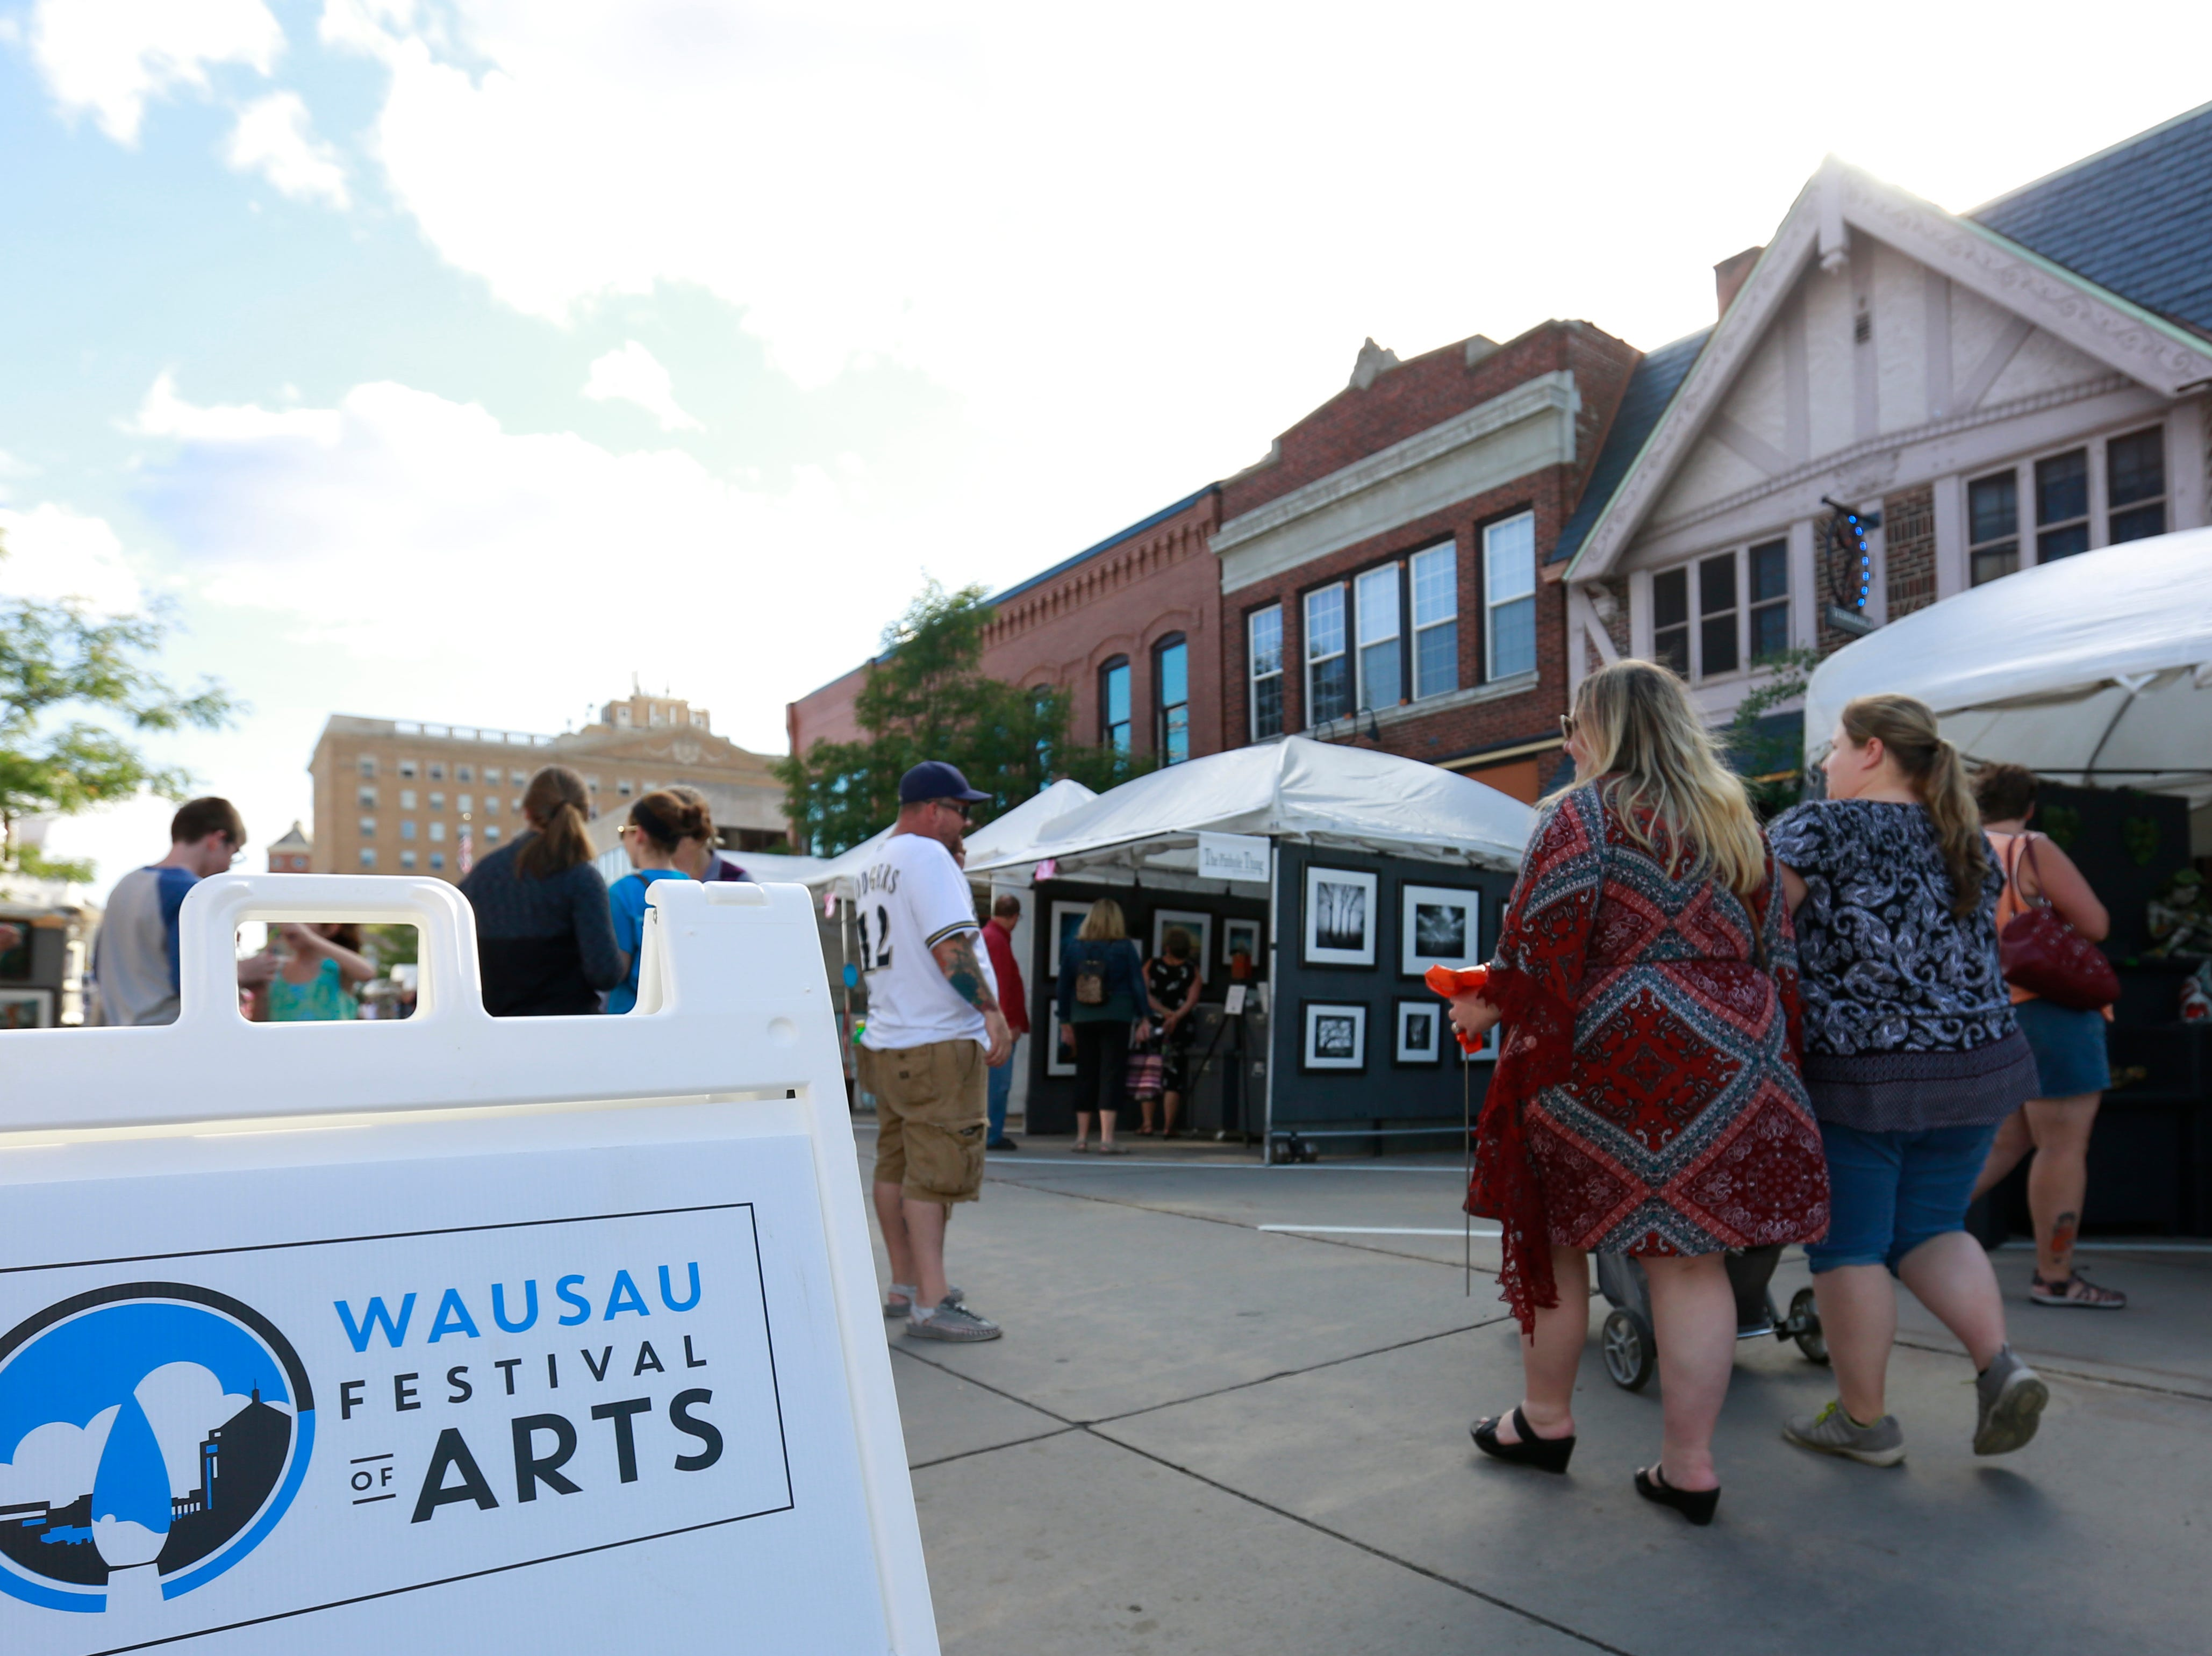 A Wausau Festival of Arts sign displays Saturday, Sept. 8, 2018, in downtown Wausau, Wis. T'xer Zhon Kha/USA TODAY NETWORK-Wisconsin